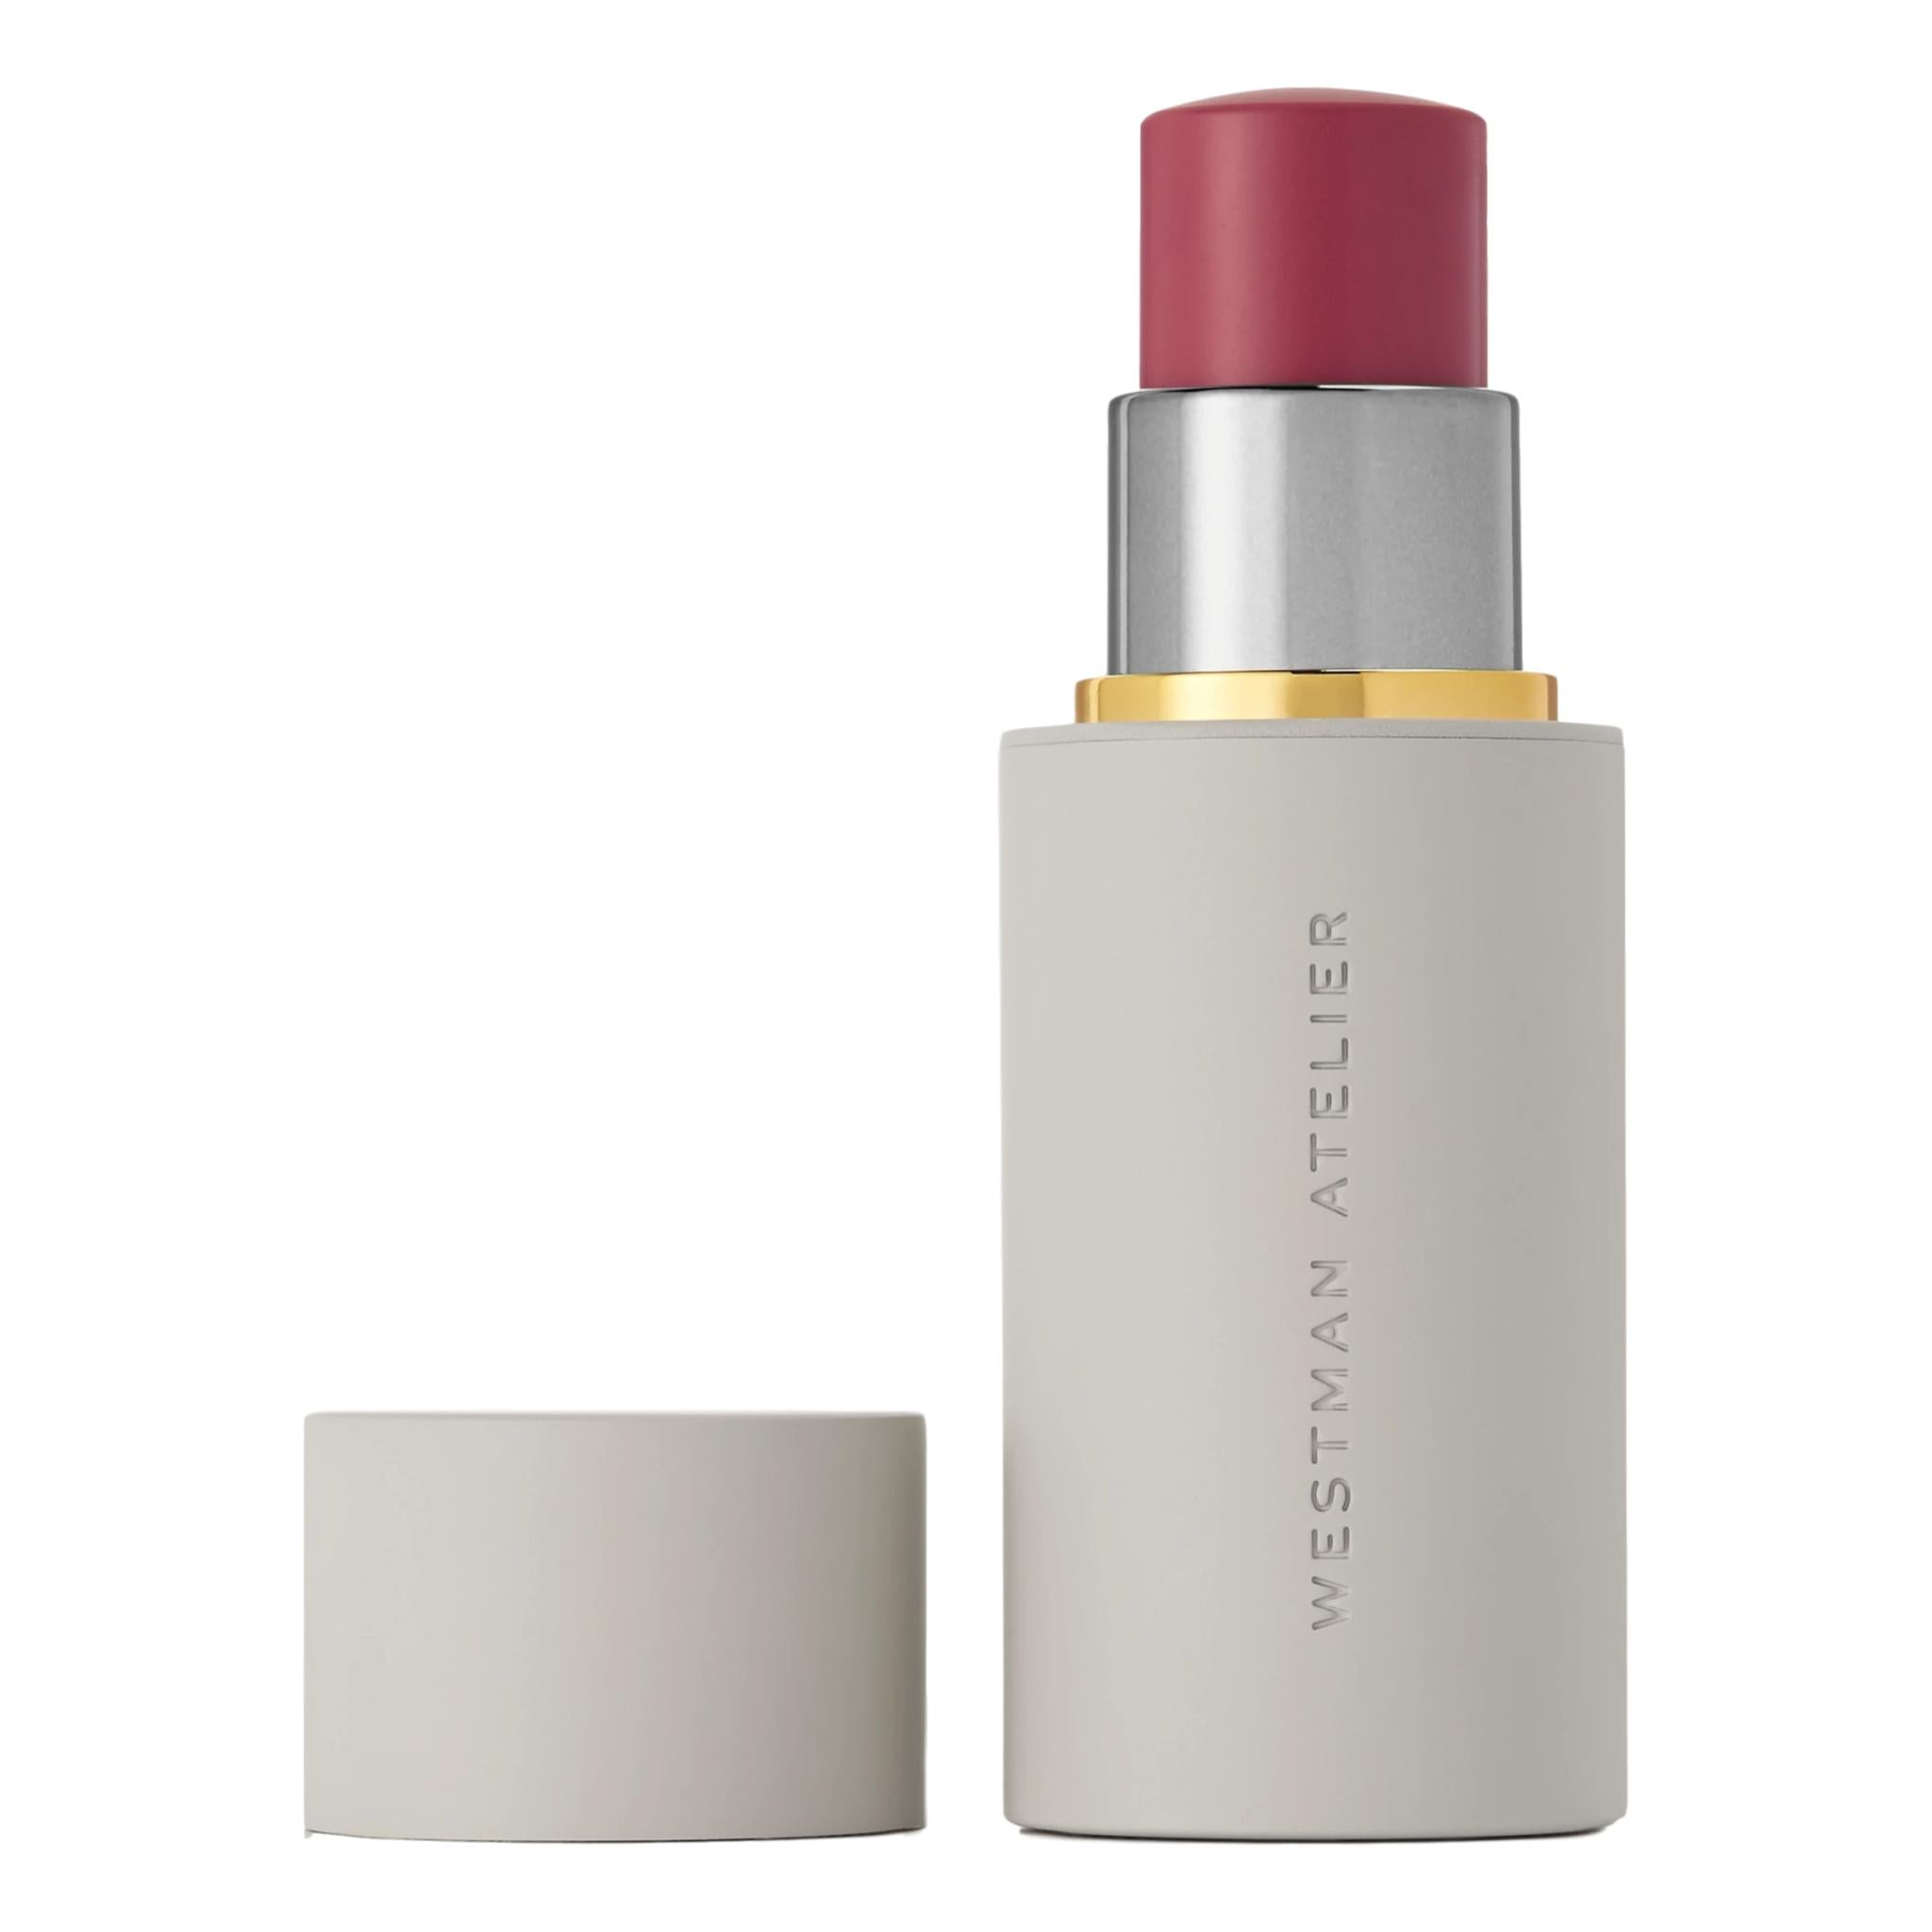 Westman Atelier Baby Cheeks Blush Stick, Blush, London Loves Beauty